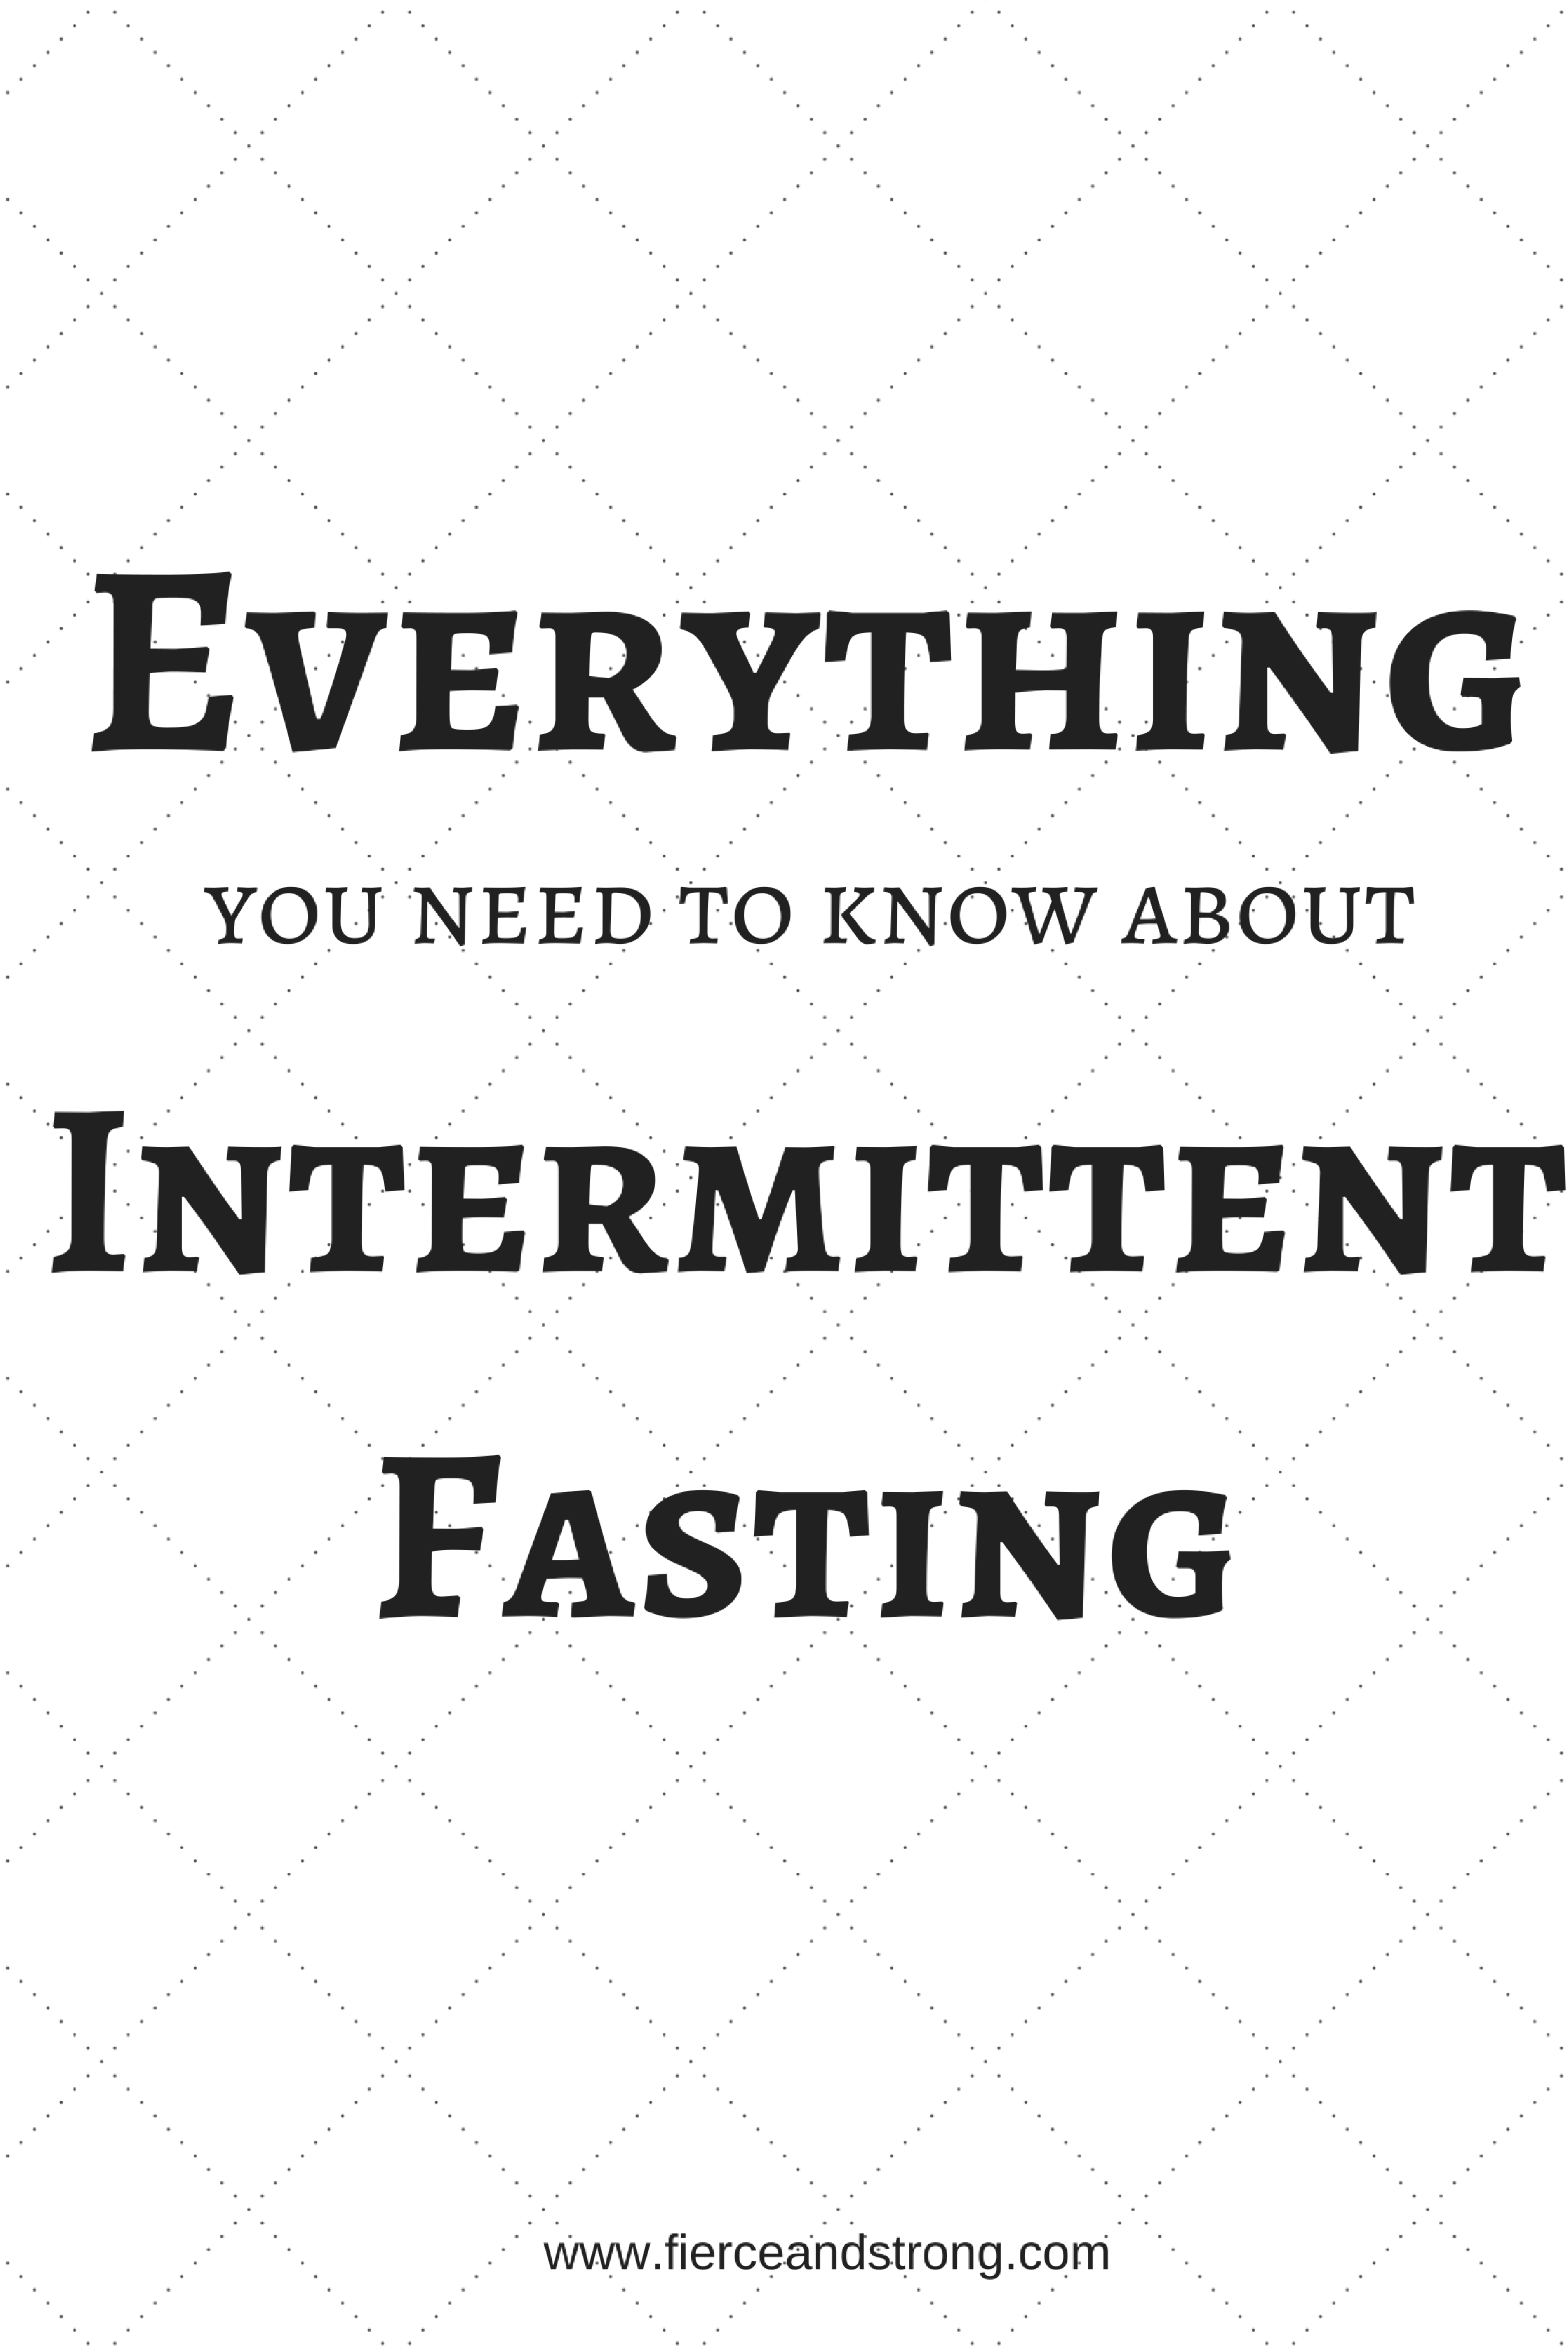 intermittent fasting